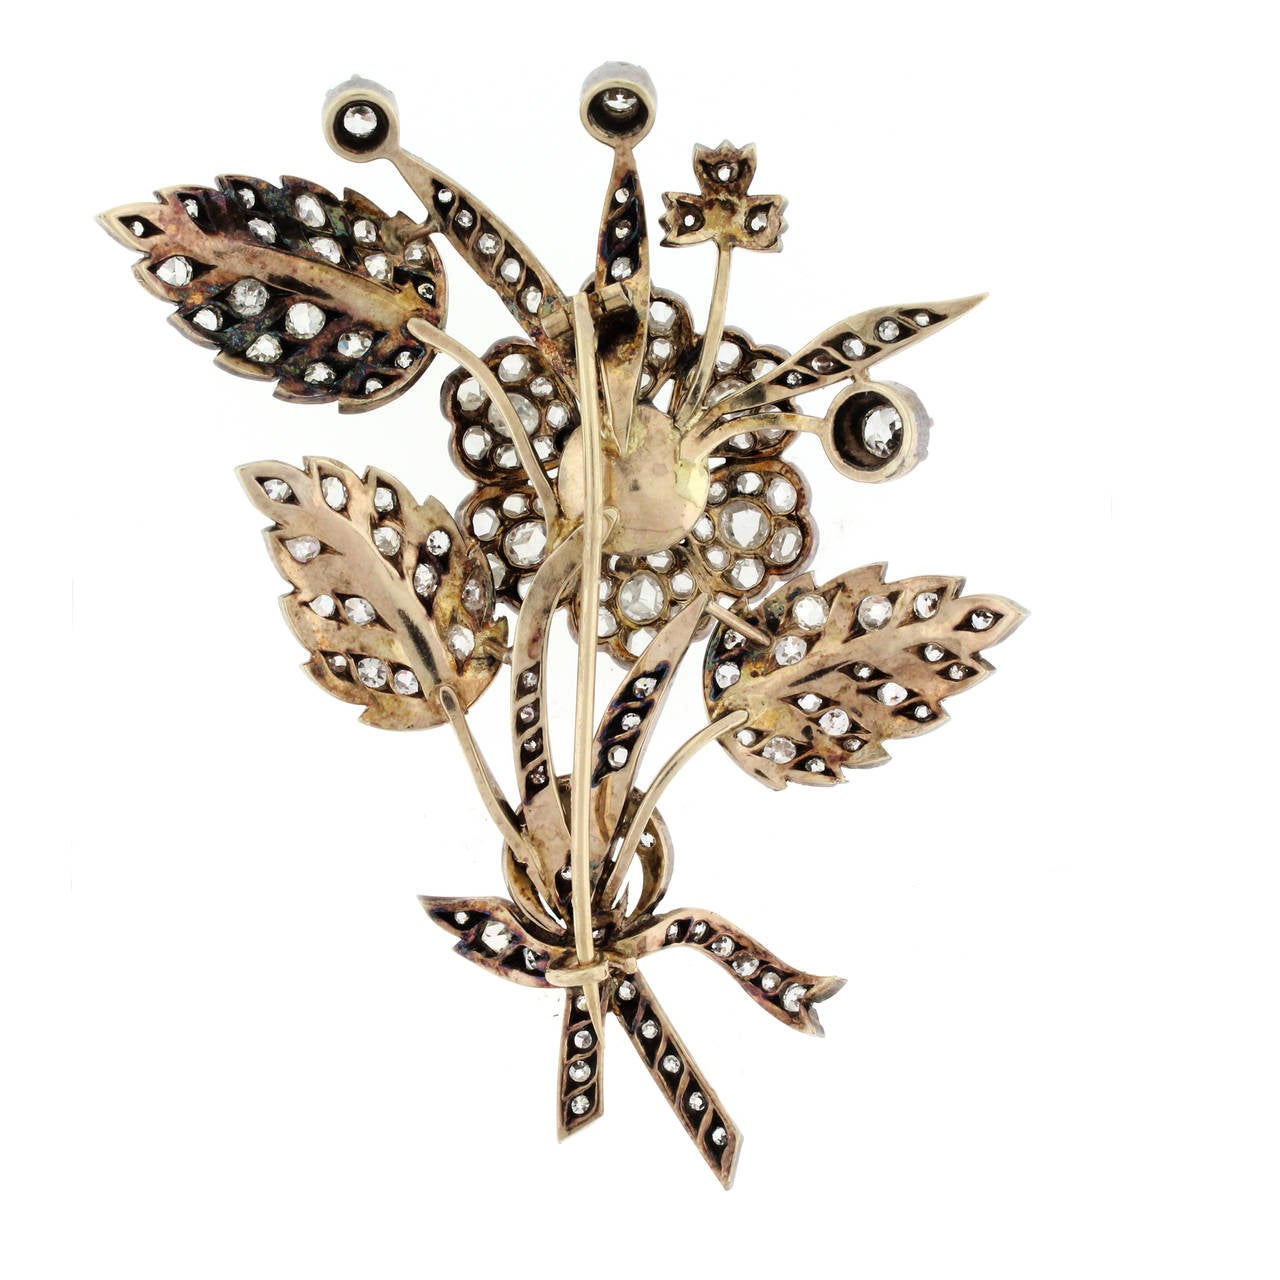 """En Tremblant"" floral brooches were popular in the 19th century. The central flower is mounted on a spring and trembles as the wearer moves.